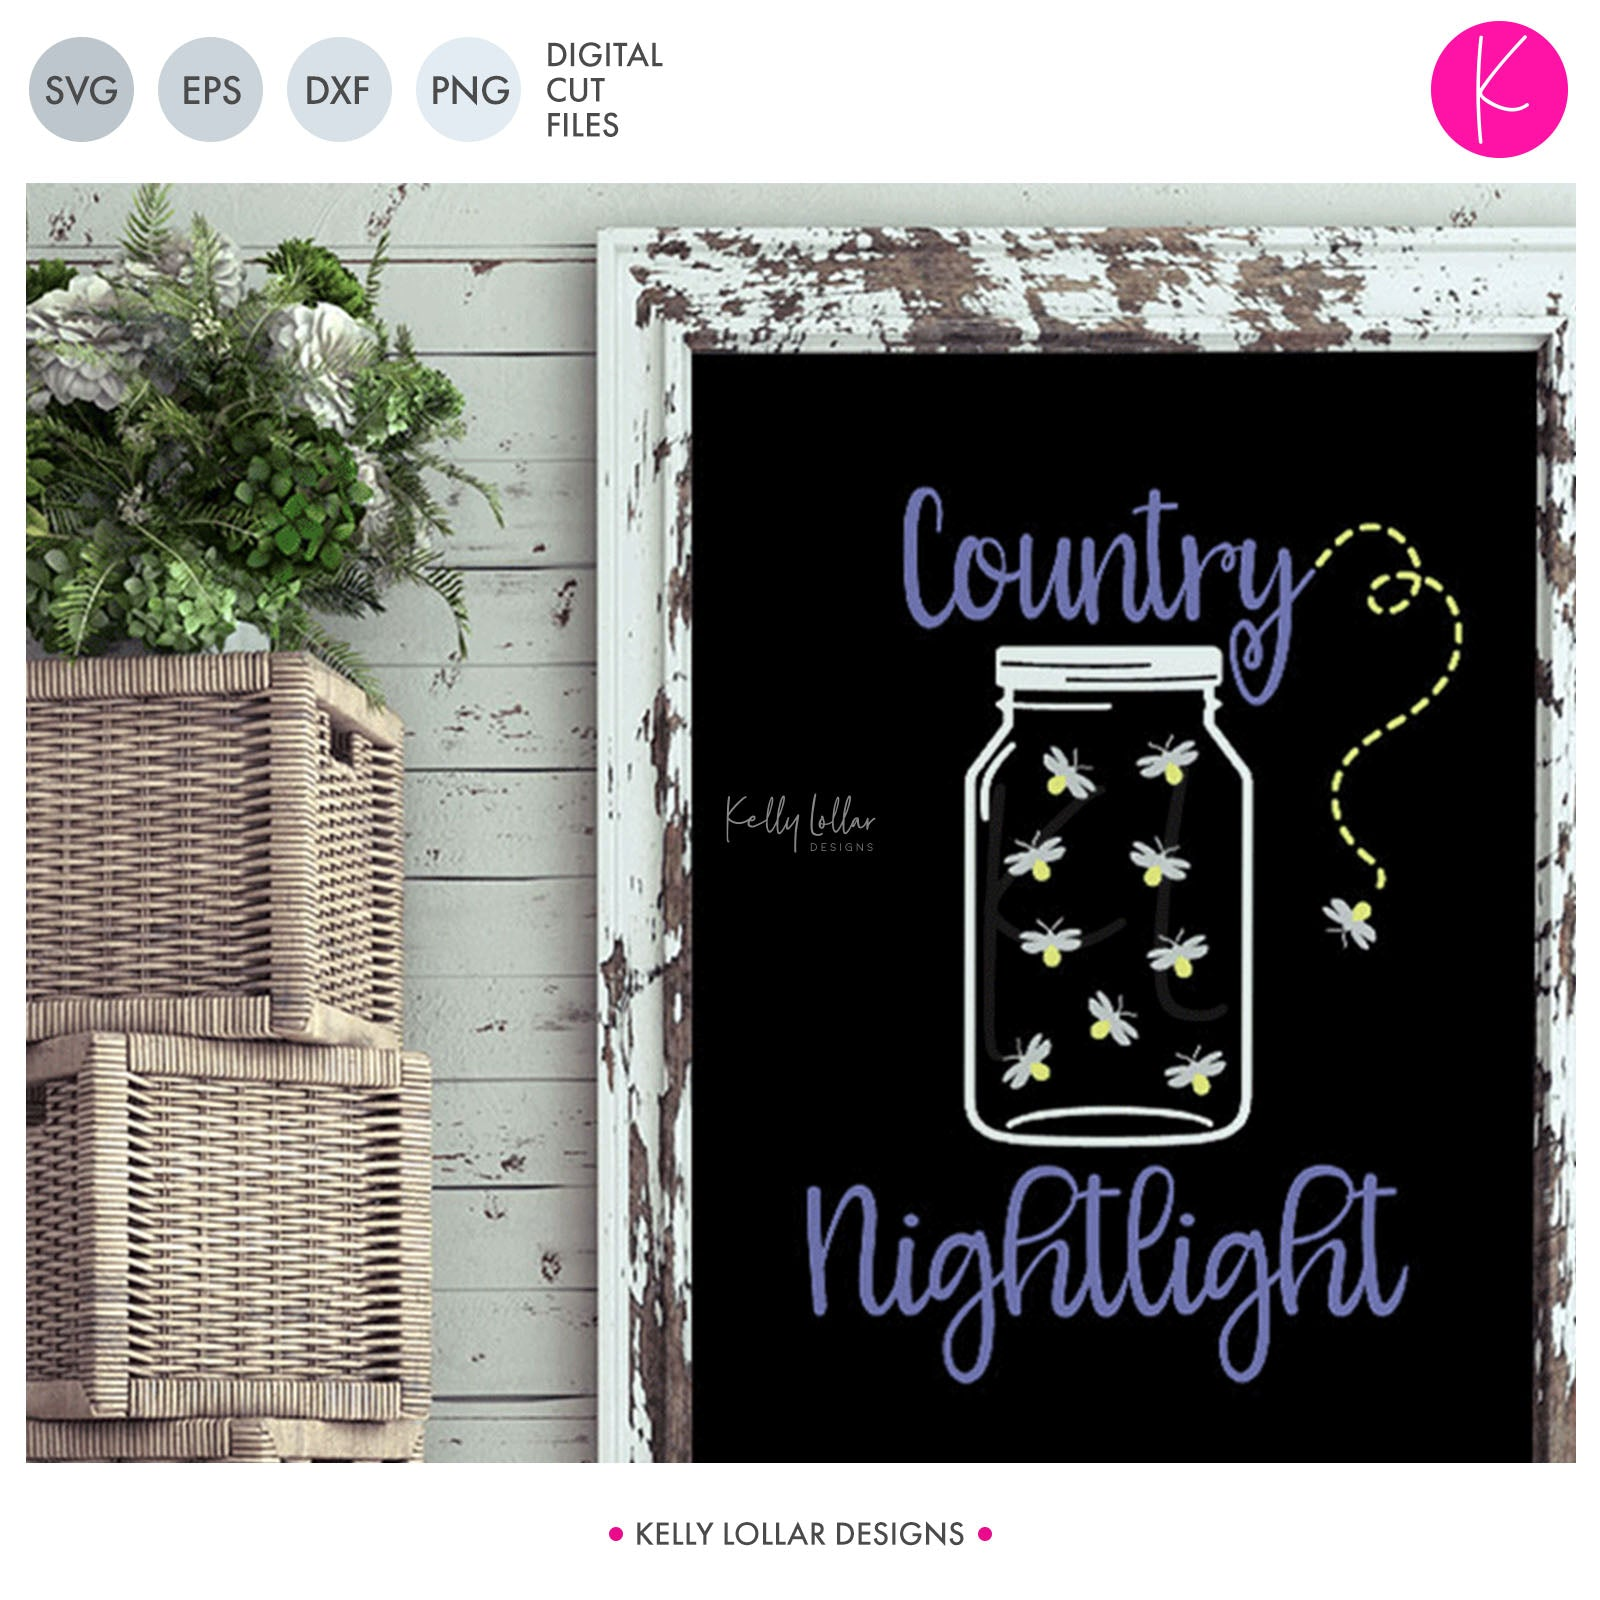 Country Nightlight | SVG DXF EPS PNG Cut Files Lightning Bug Filled Mason Jar with Quote for Country Decor | SVG DXF PNG Cut Files  1 file for each format mason jar and firefly can be used separately